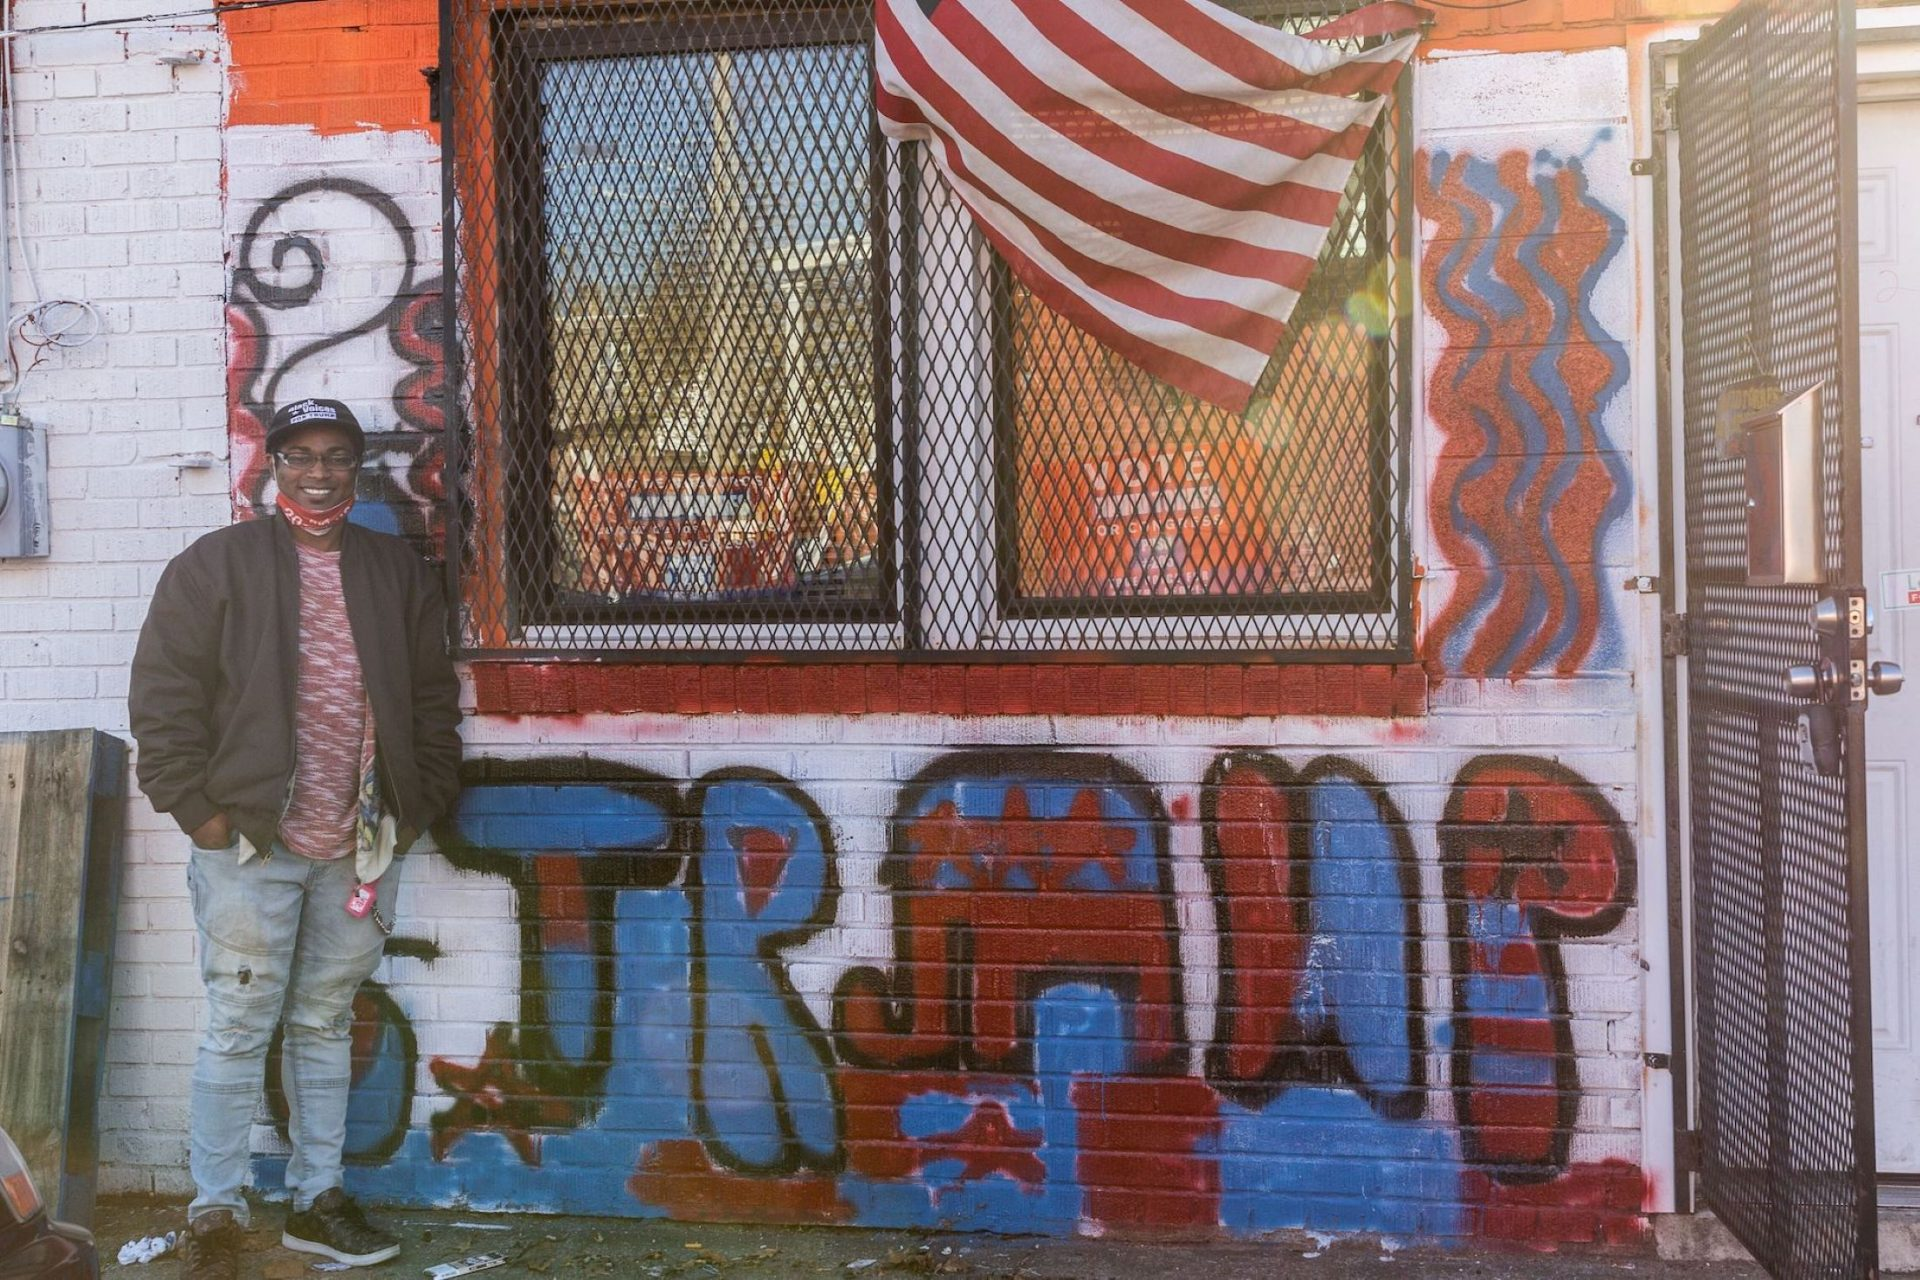 Pastor Phillip Fisher Jr. of the Center of Universal Divinity in North Philadelphia supported President Trump and local Republicans in the Nov. 3 election. Children he works with in his congregation painted the Trump 2020 mural outside the church.